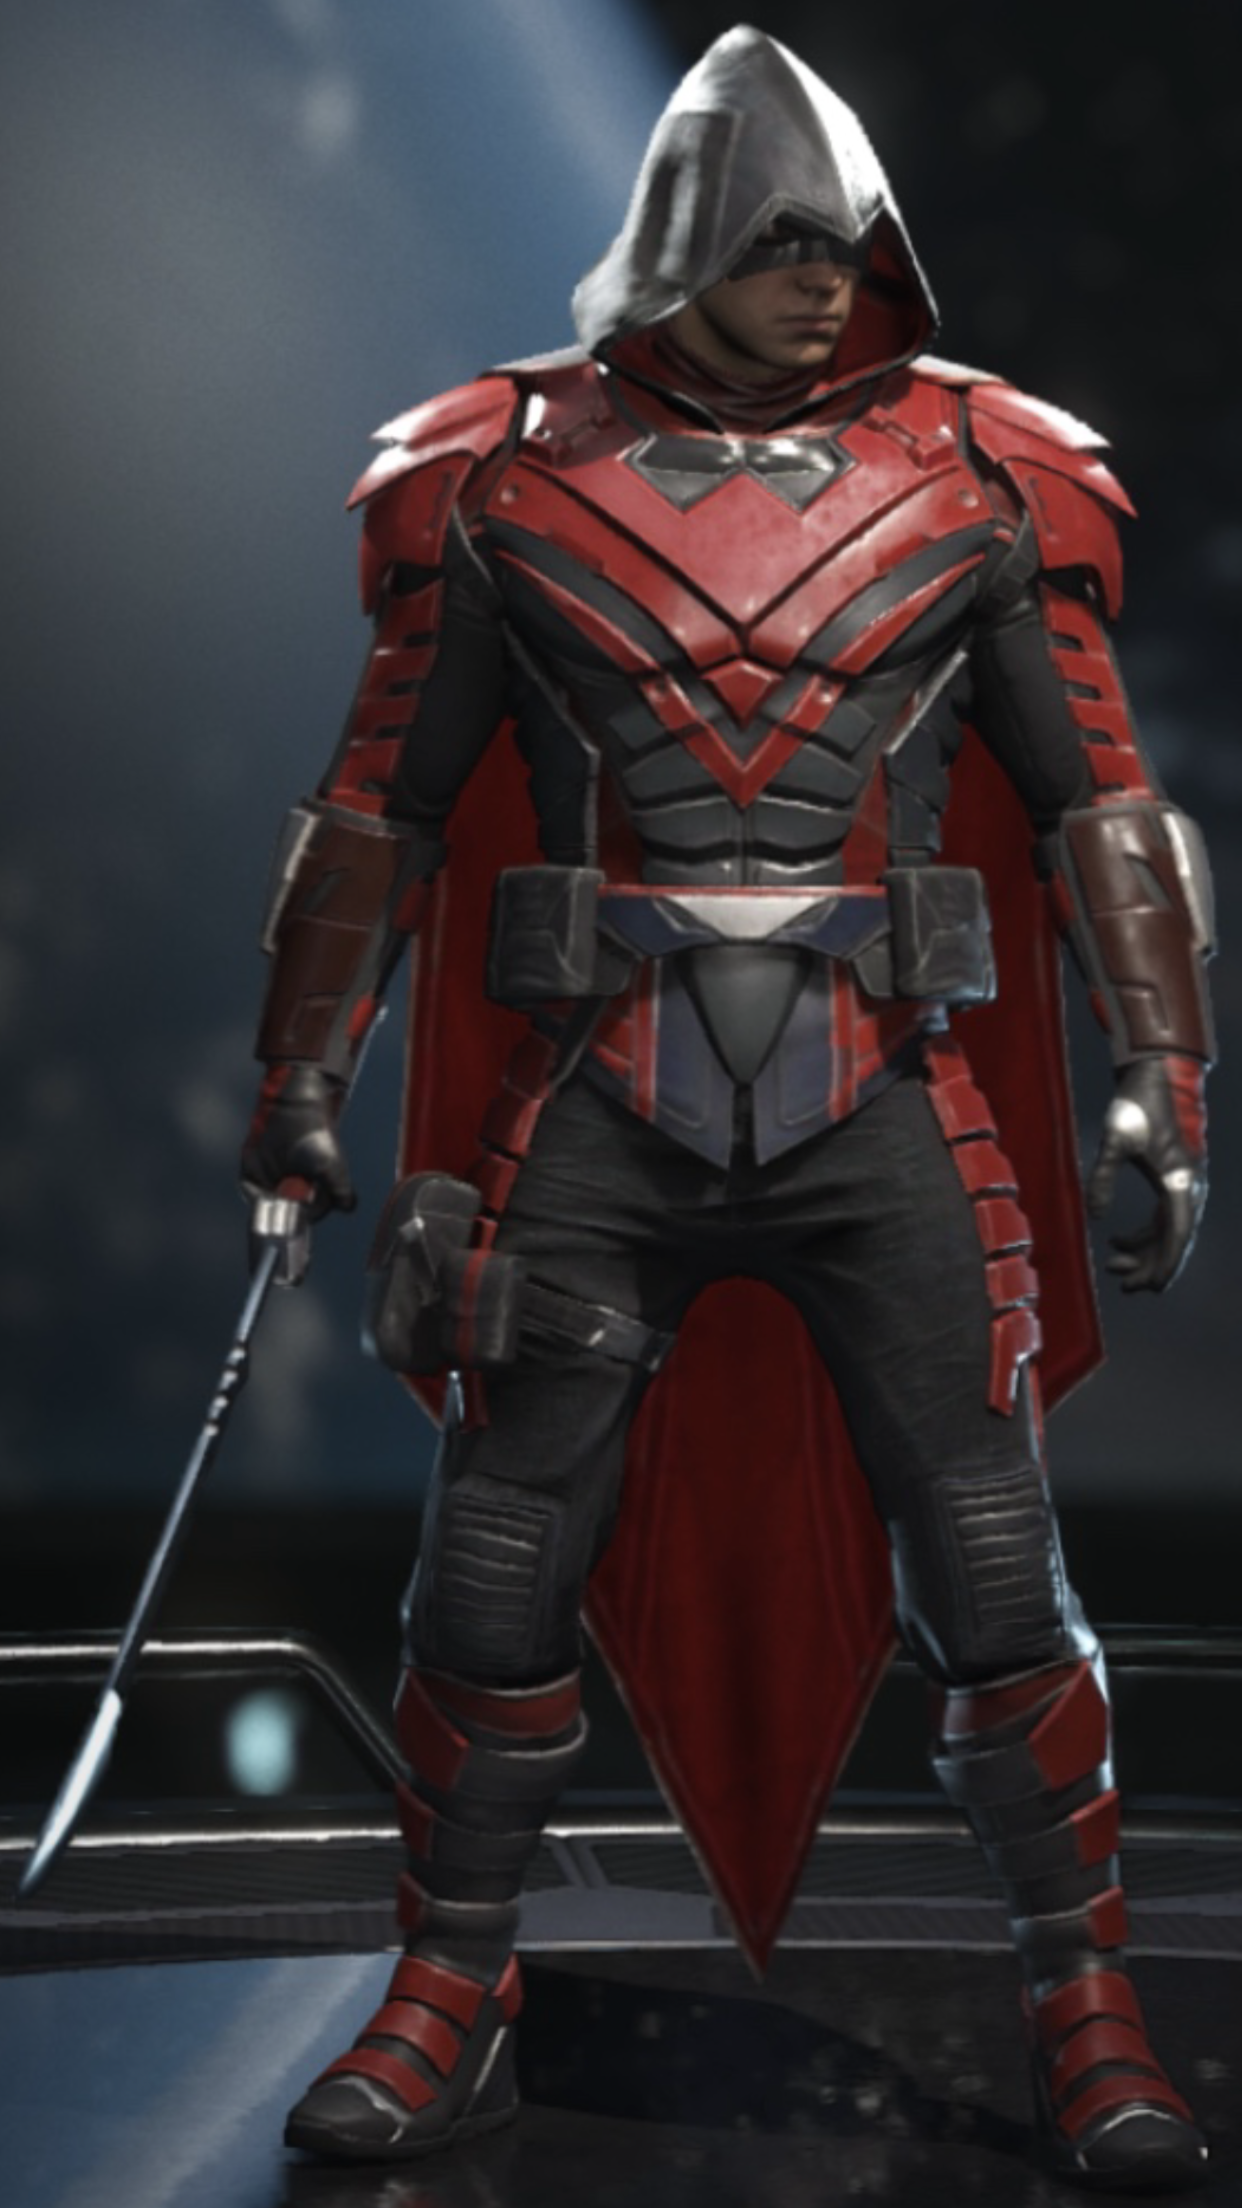 INJUSTICE 2. Robin. Damian Wayne. (With images)